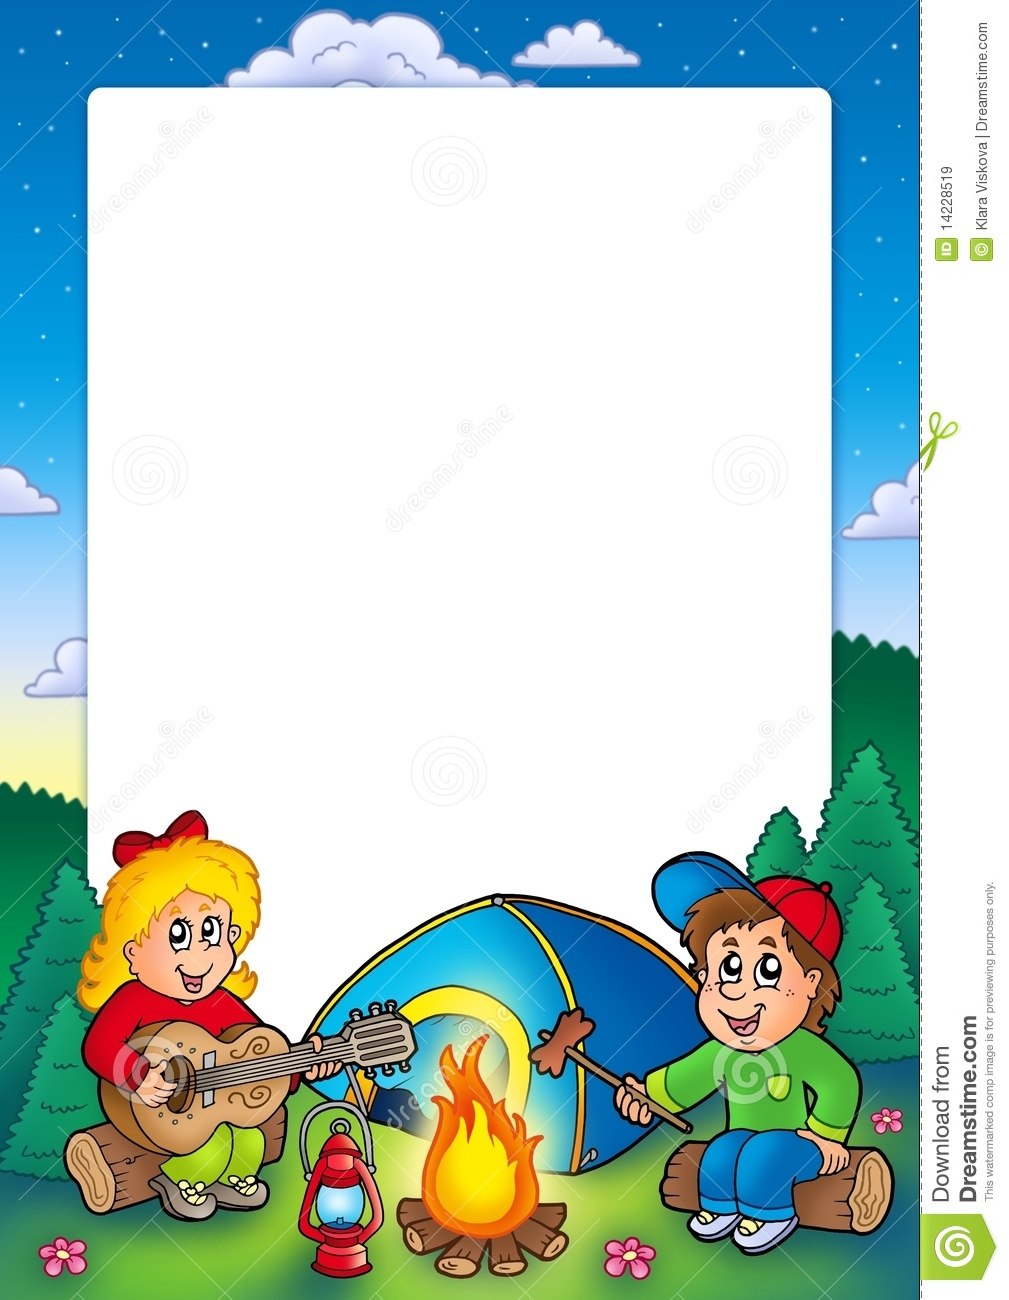 Camping Clipart Repin Image Royalty Free Rf On Pinterest Kids Clip.